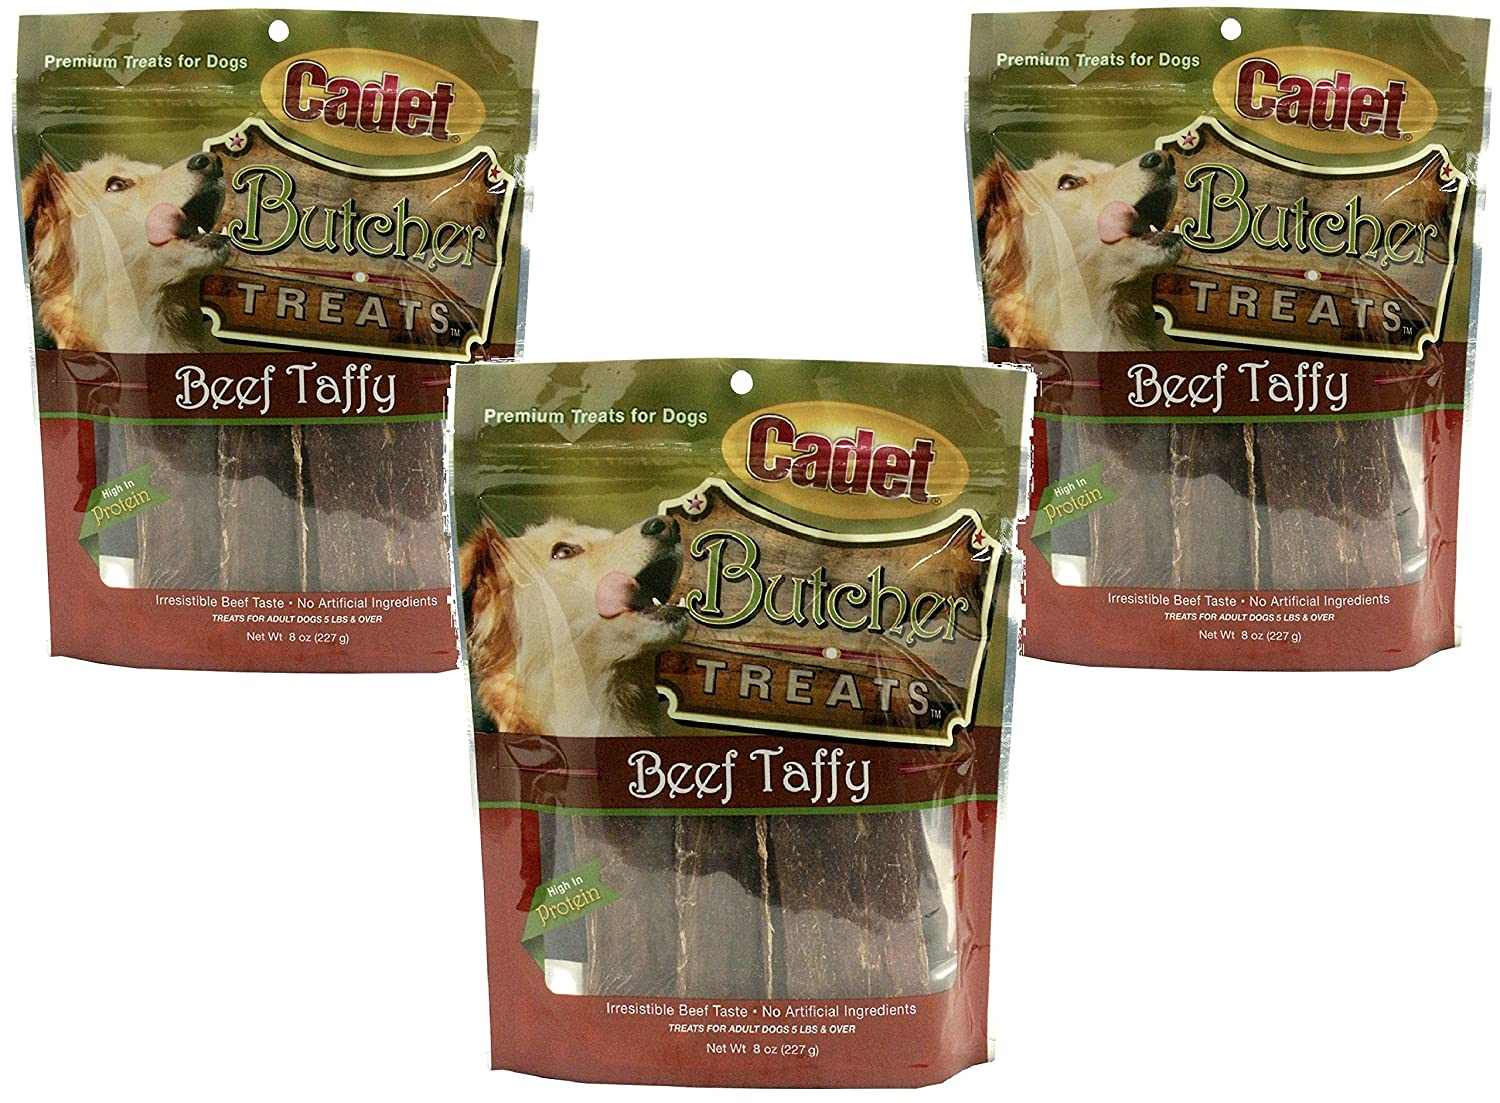 Cadet 3 Pack of Butcher Treats, 8 Ounces each, 100 Percent Beef Dog Snacks